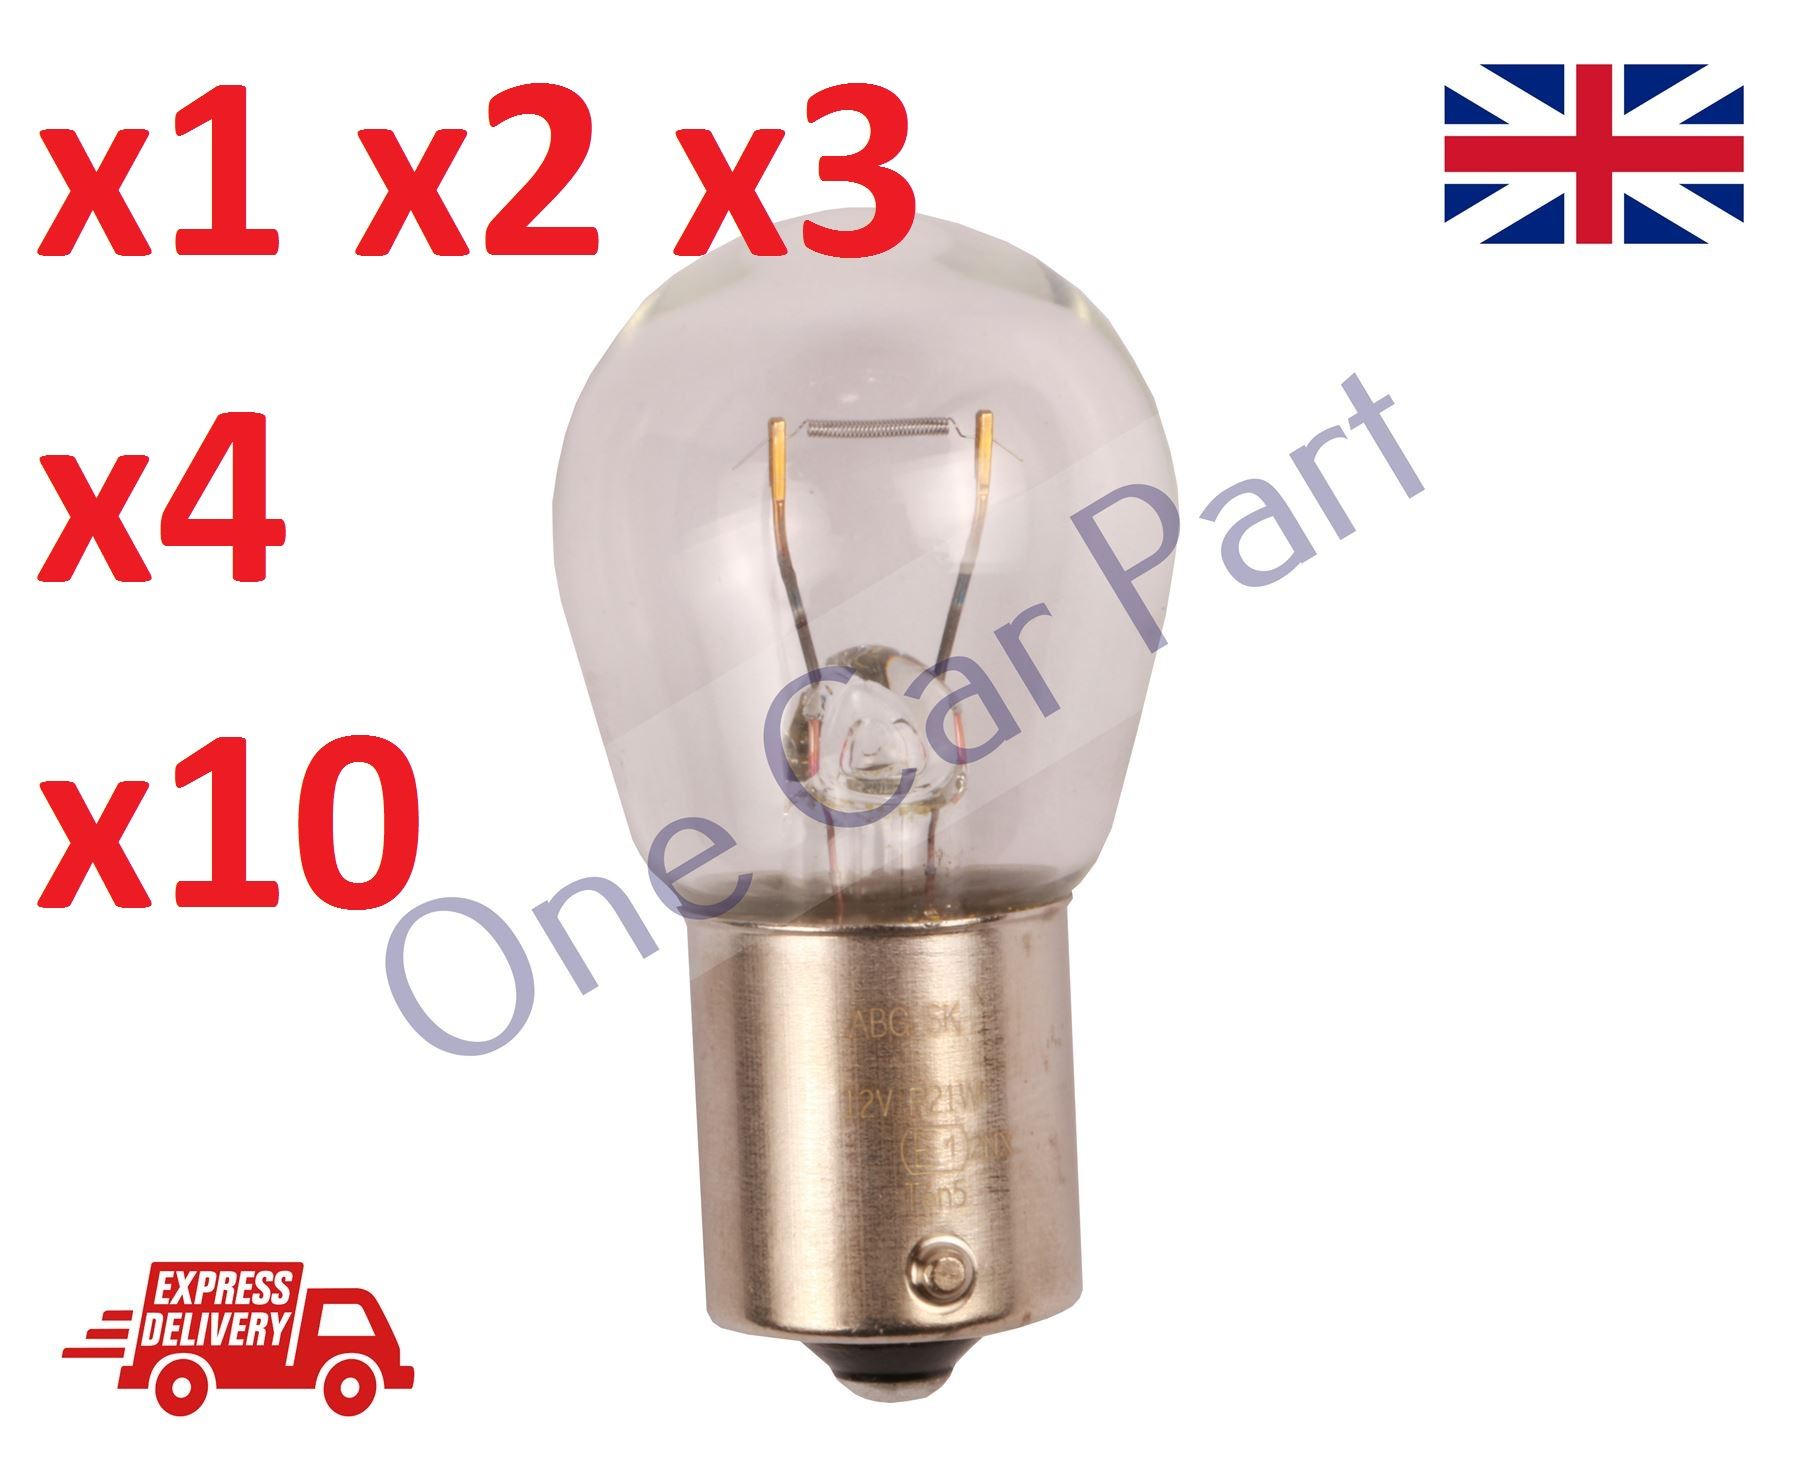 10 x 382 12V P21W Car Stop Tail Rear Reverse Fog Light Indicator Bulbs BA15S NEW